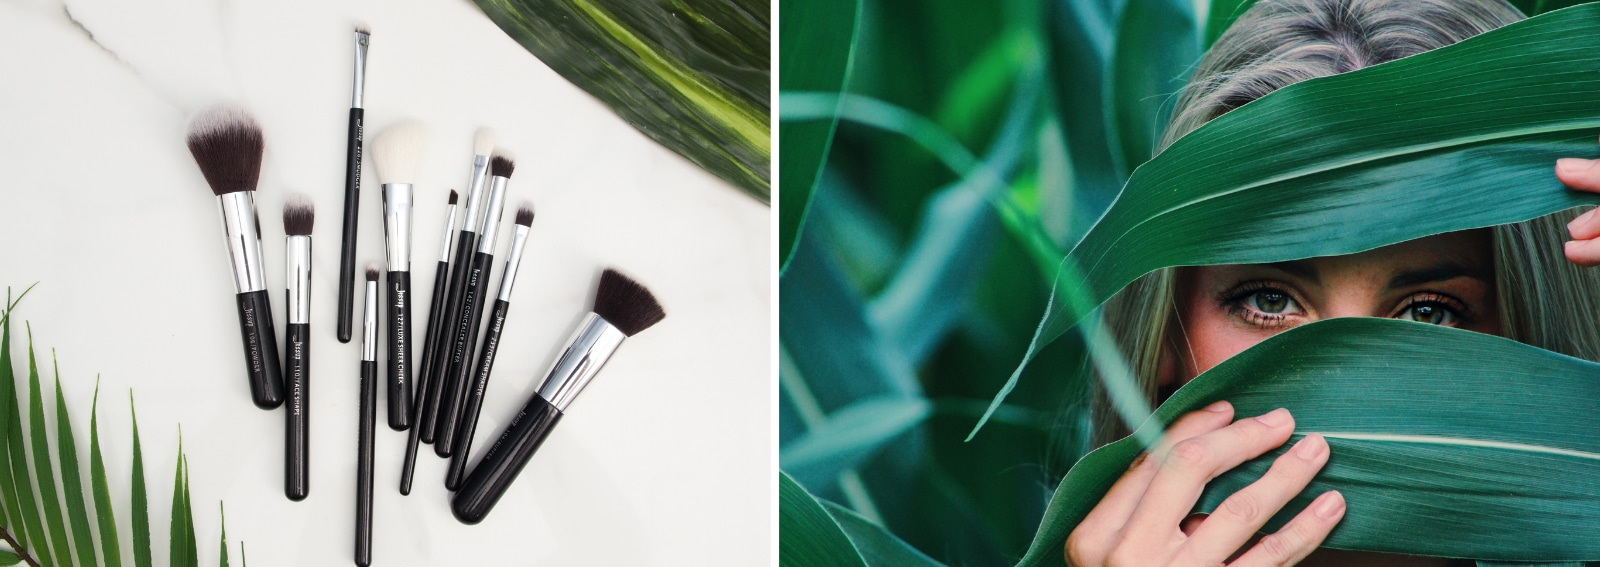 Make-up green: le tendenze del momento e i brand da provare